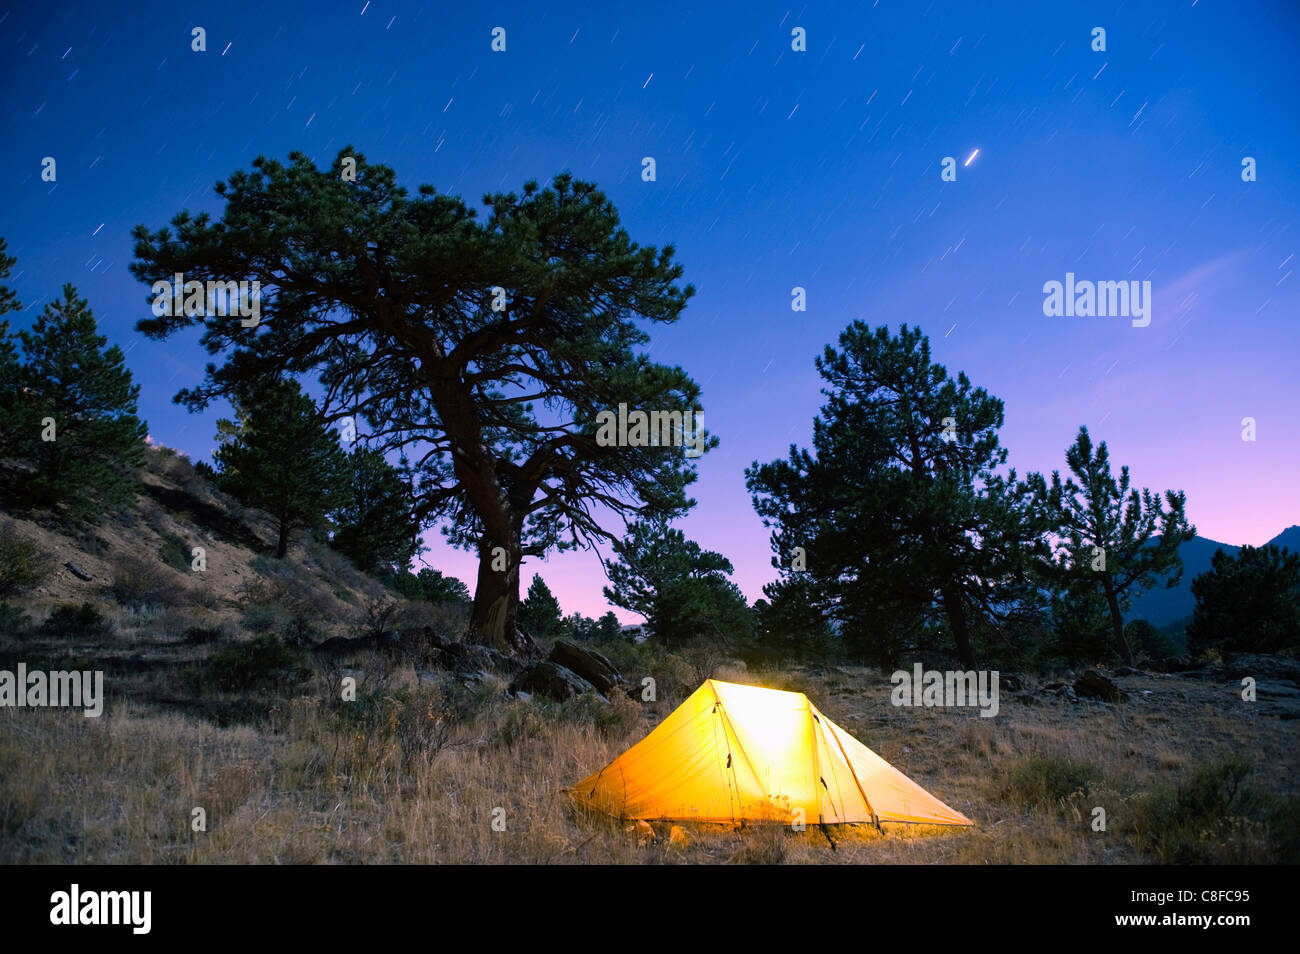 Tent illuminated under the night sky, Rocky Mountain National Park, Colorado, United States of America - Stock Image